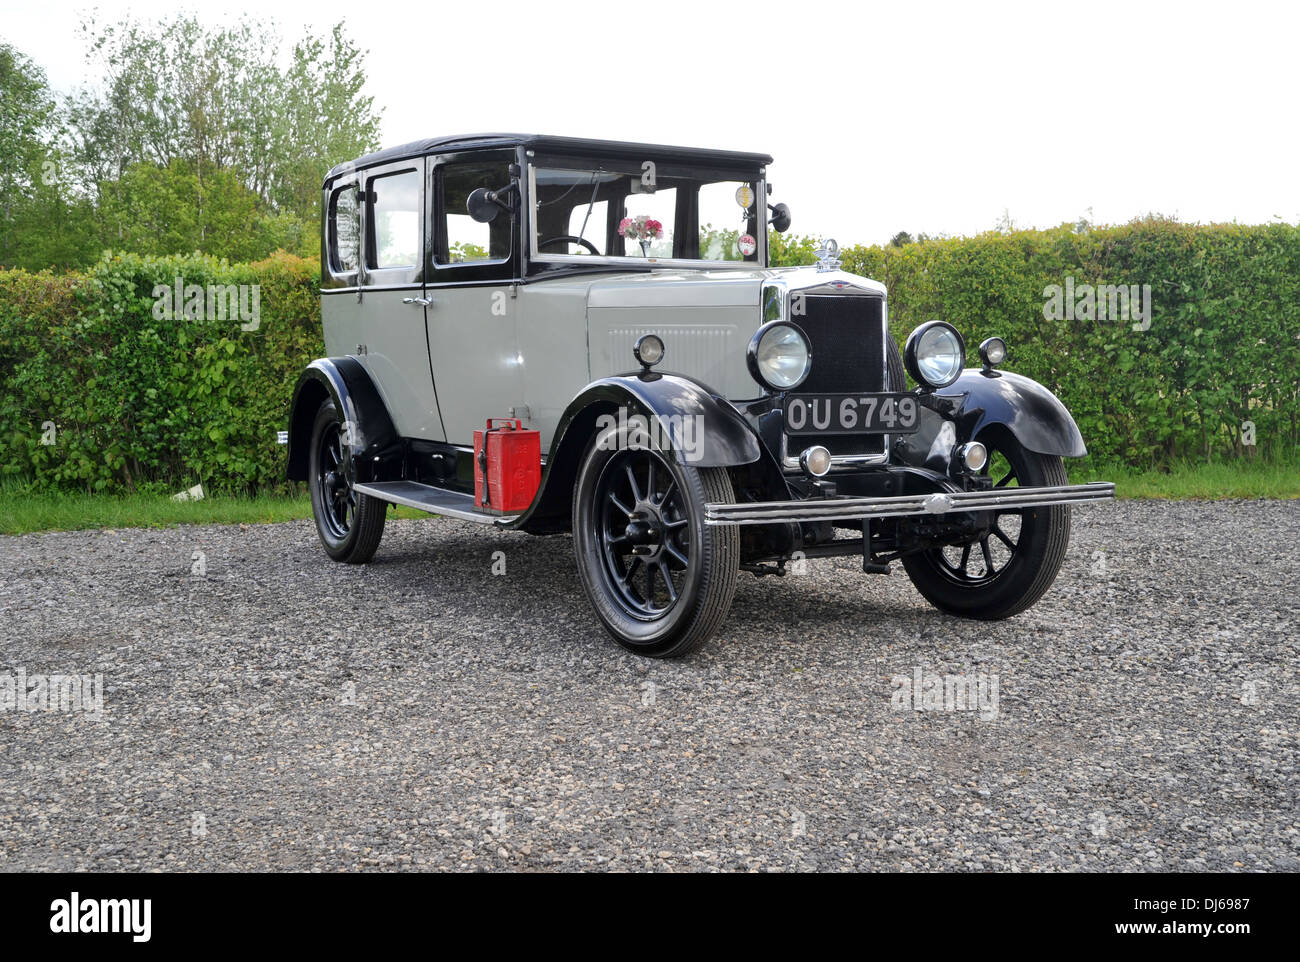 Morris Cowley Vintage British classic car of the 1920s and 30s - Stock Image